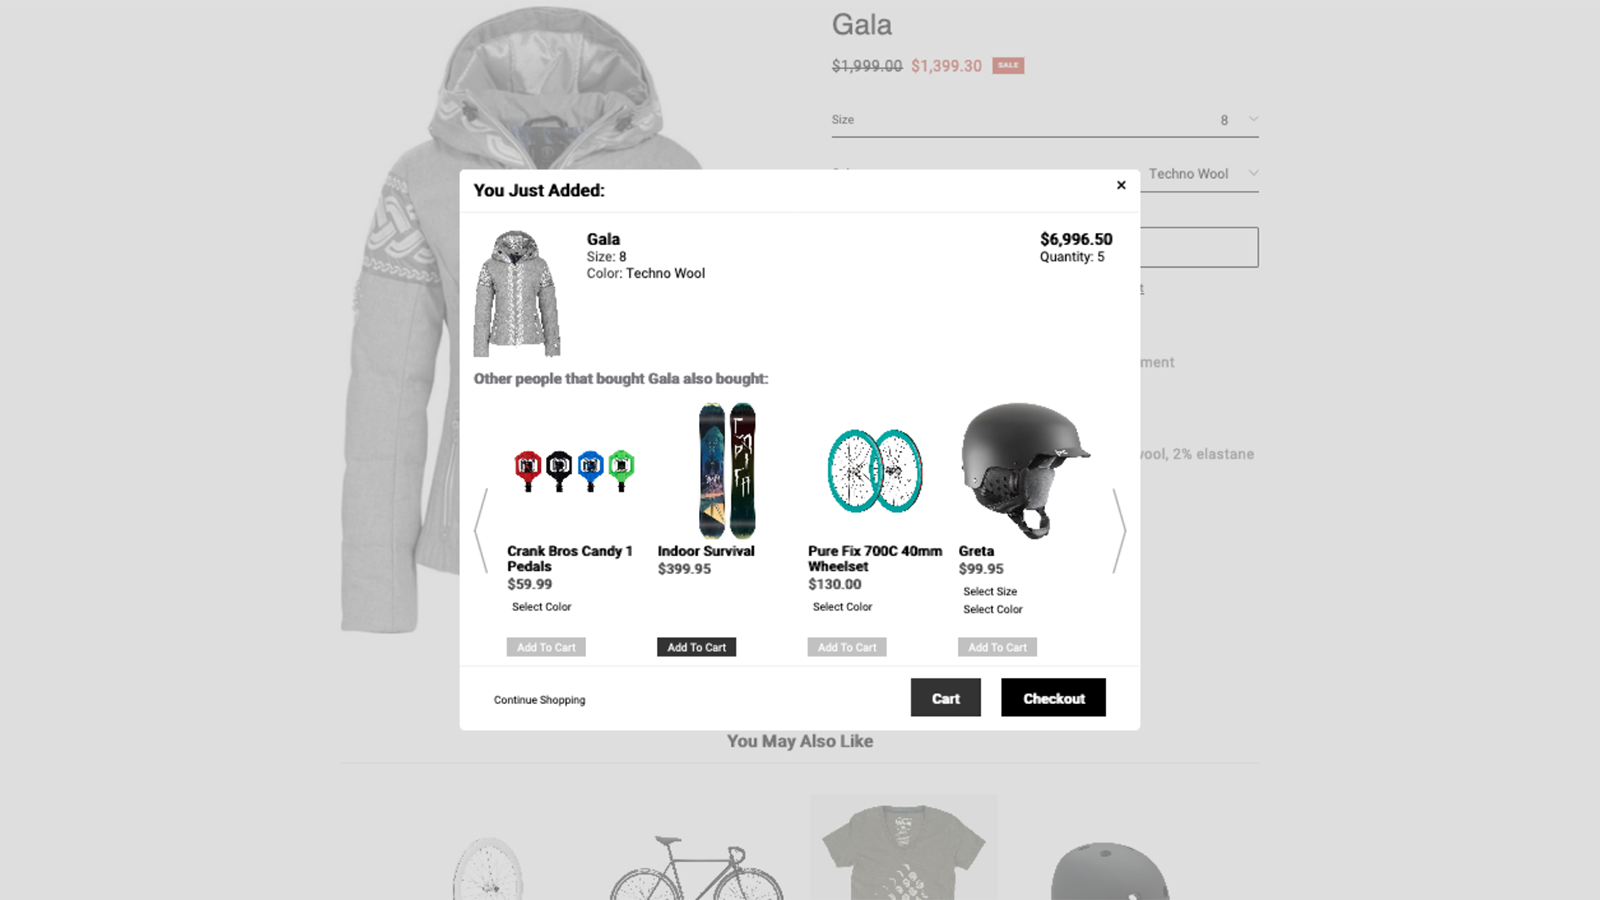 Product Recommendations Popup w/ Color and Size Selection